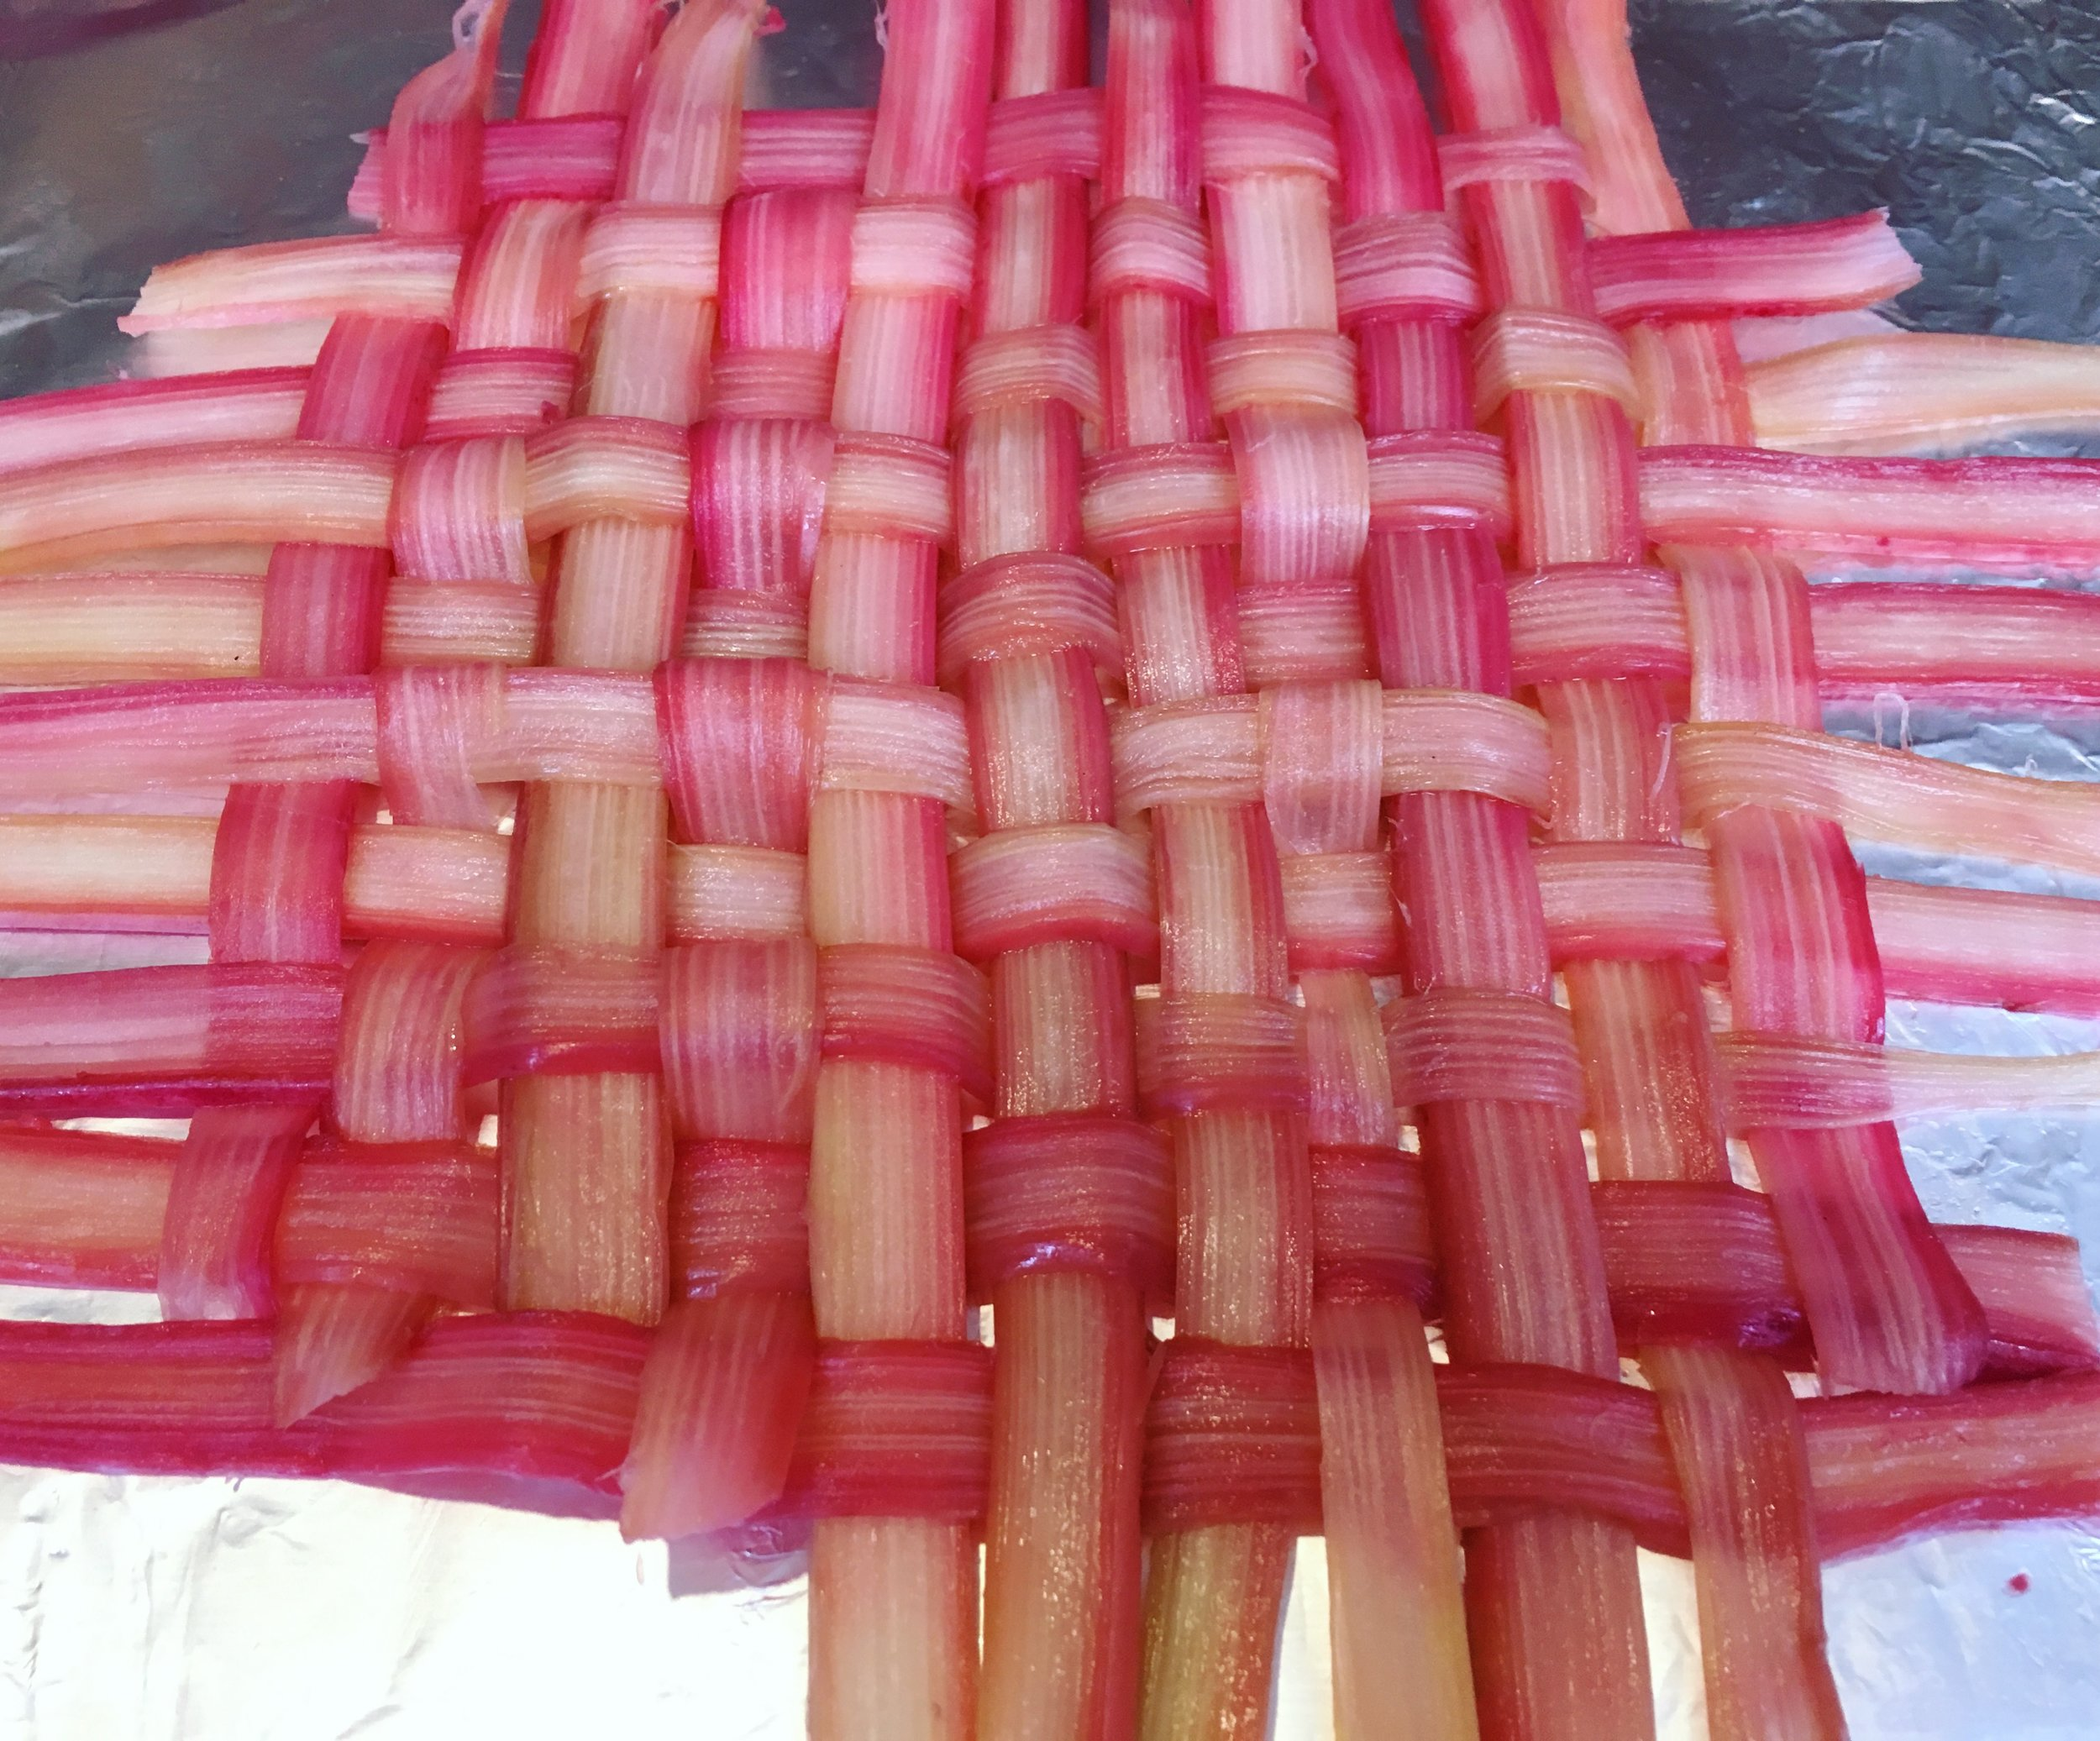 Woven rhubarb prepped on foil.